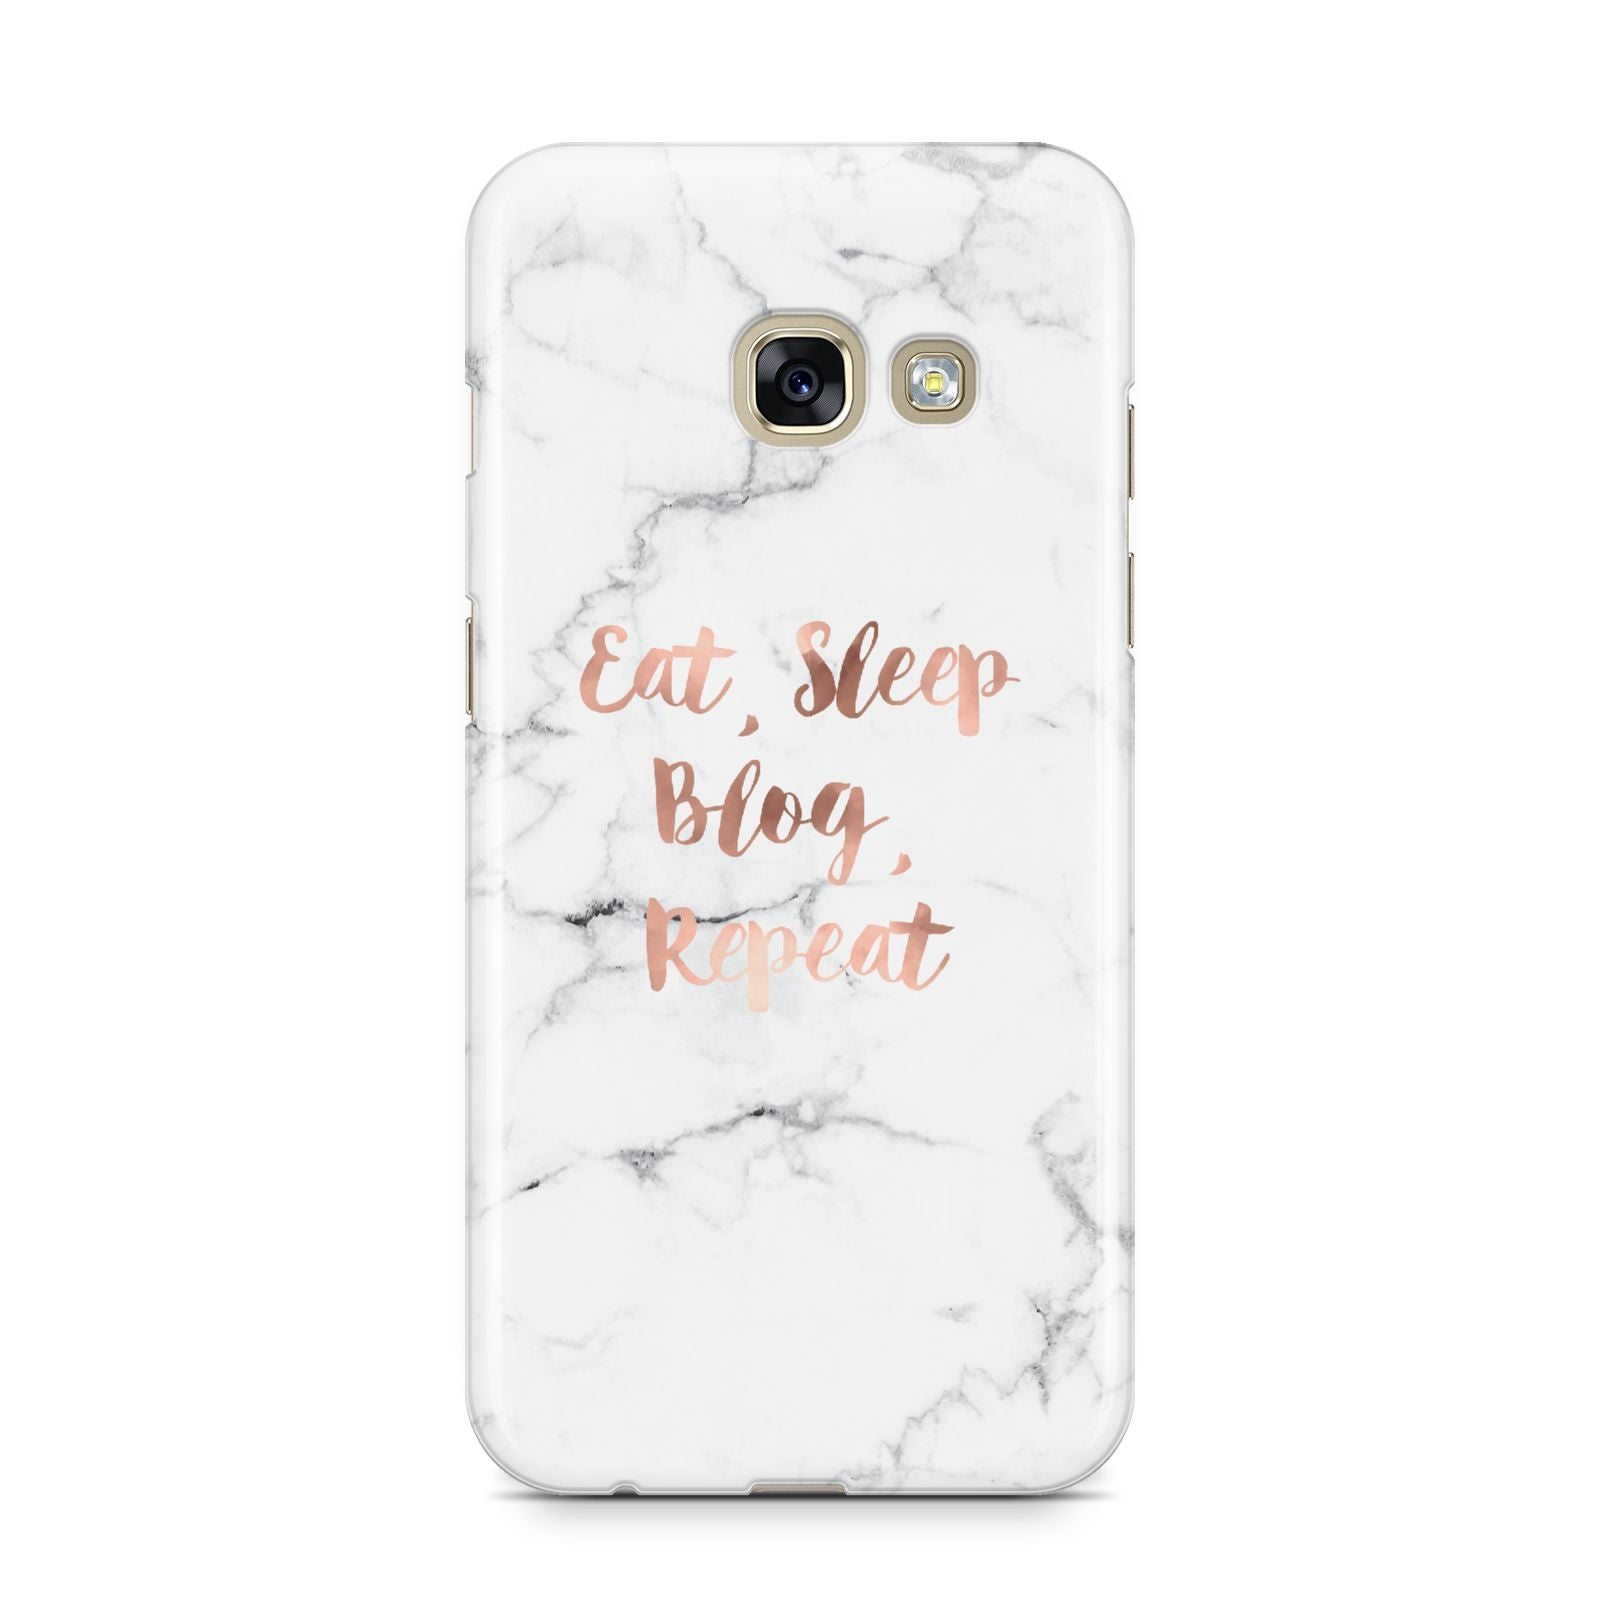 Eat Sleep Blog Repeat Marble Effect Samsung Galaxy A3 2017 Case on gold phone